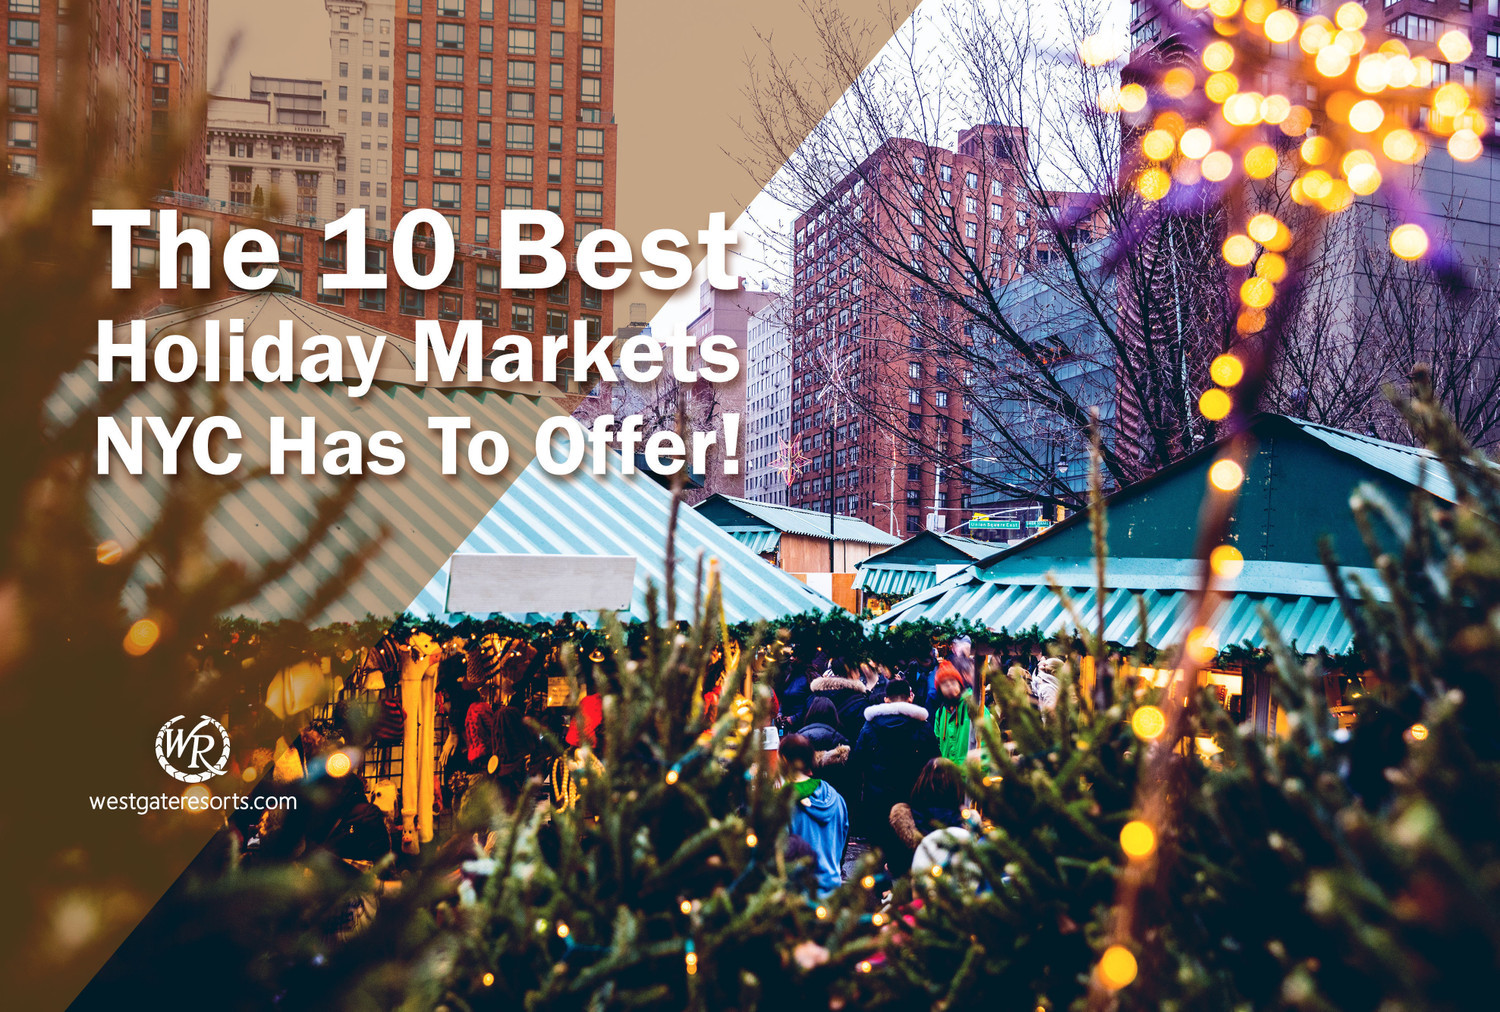 The 10 Best Holiday Markets NYC Has To Offer | New York City Christmas Markets